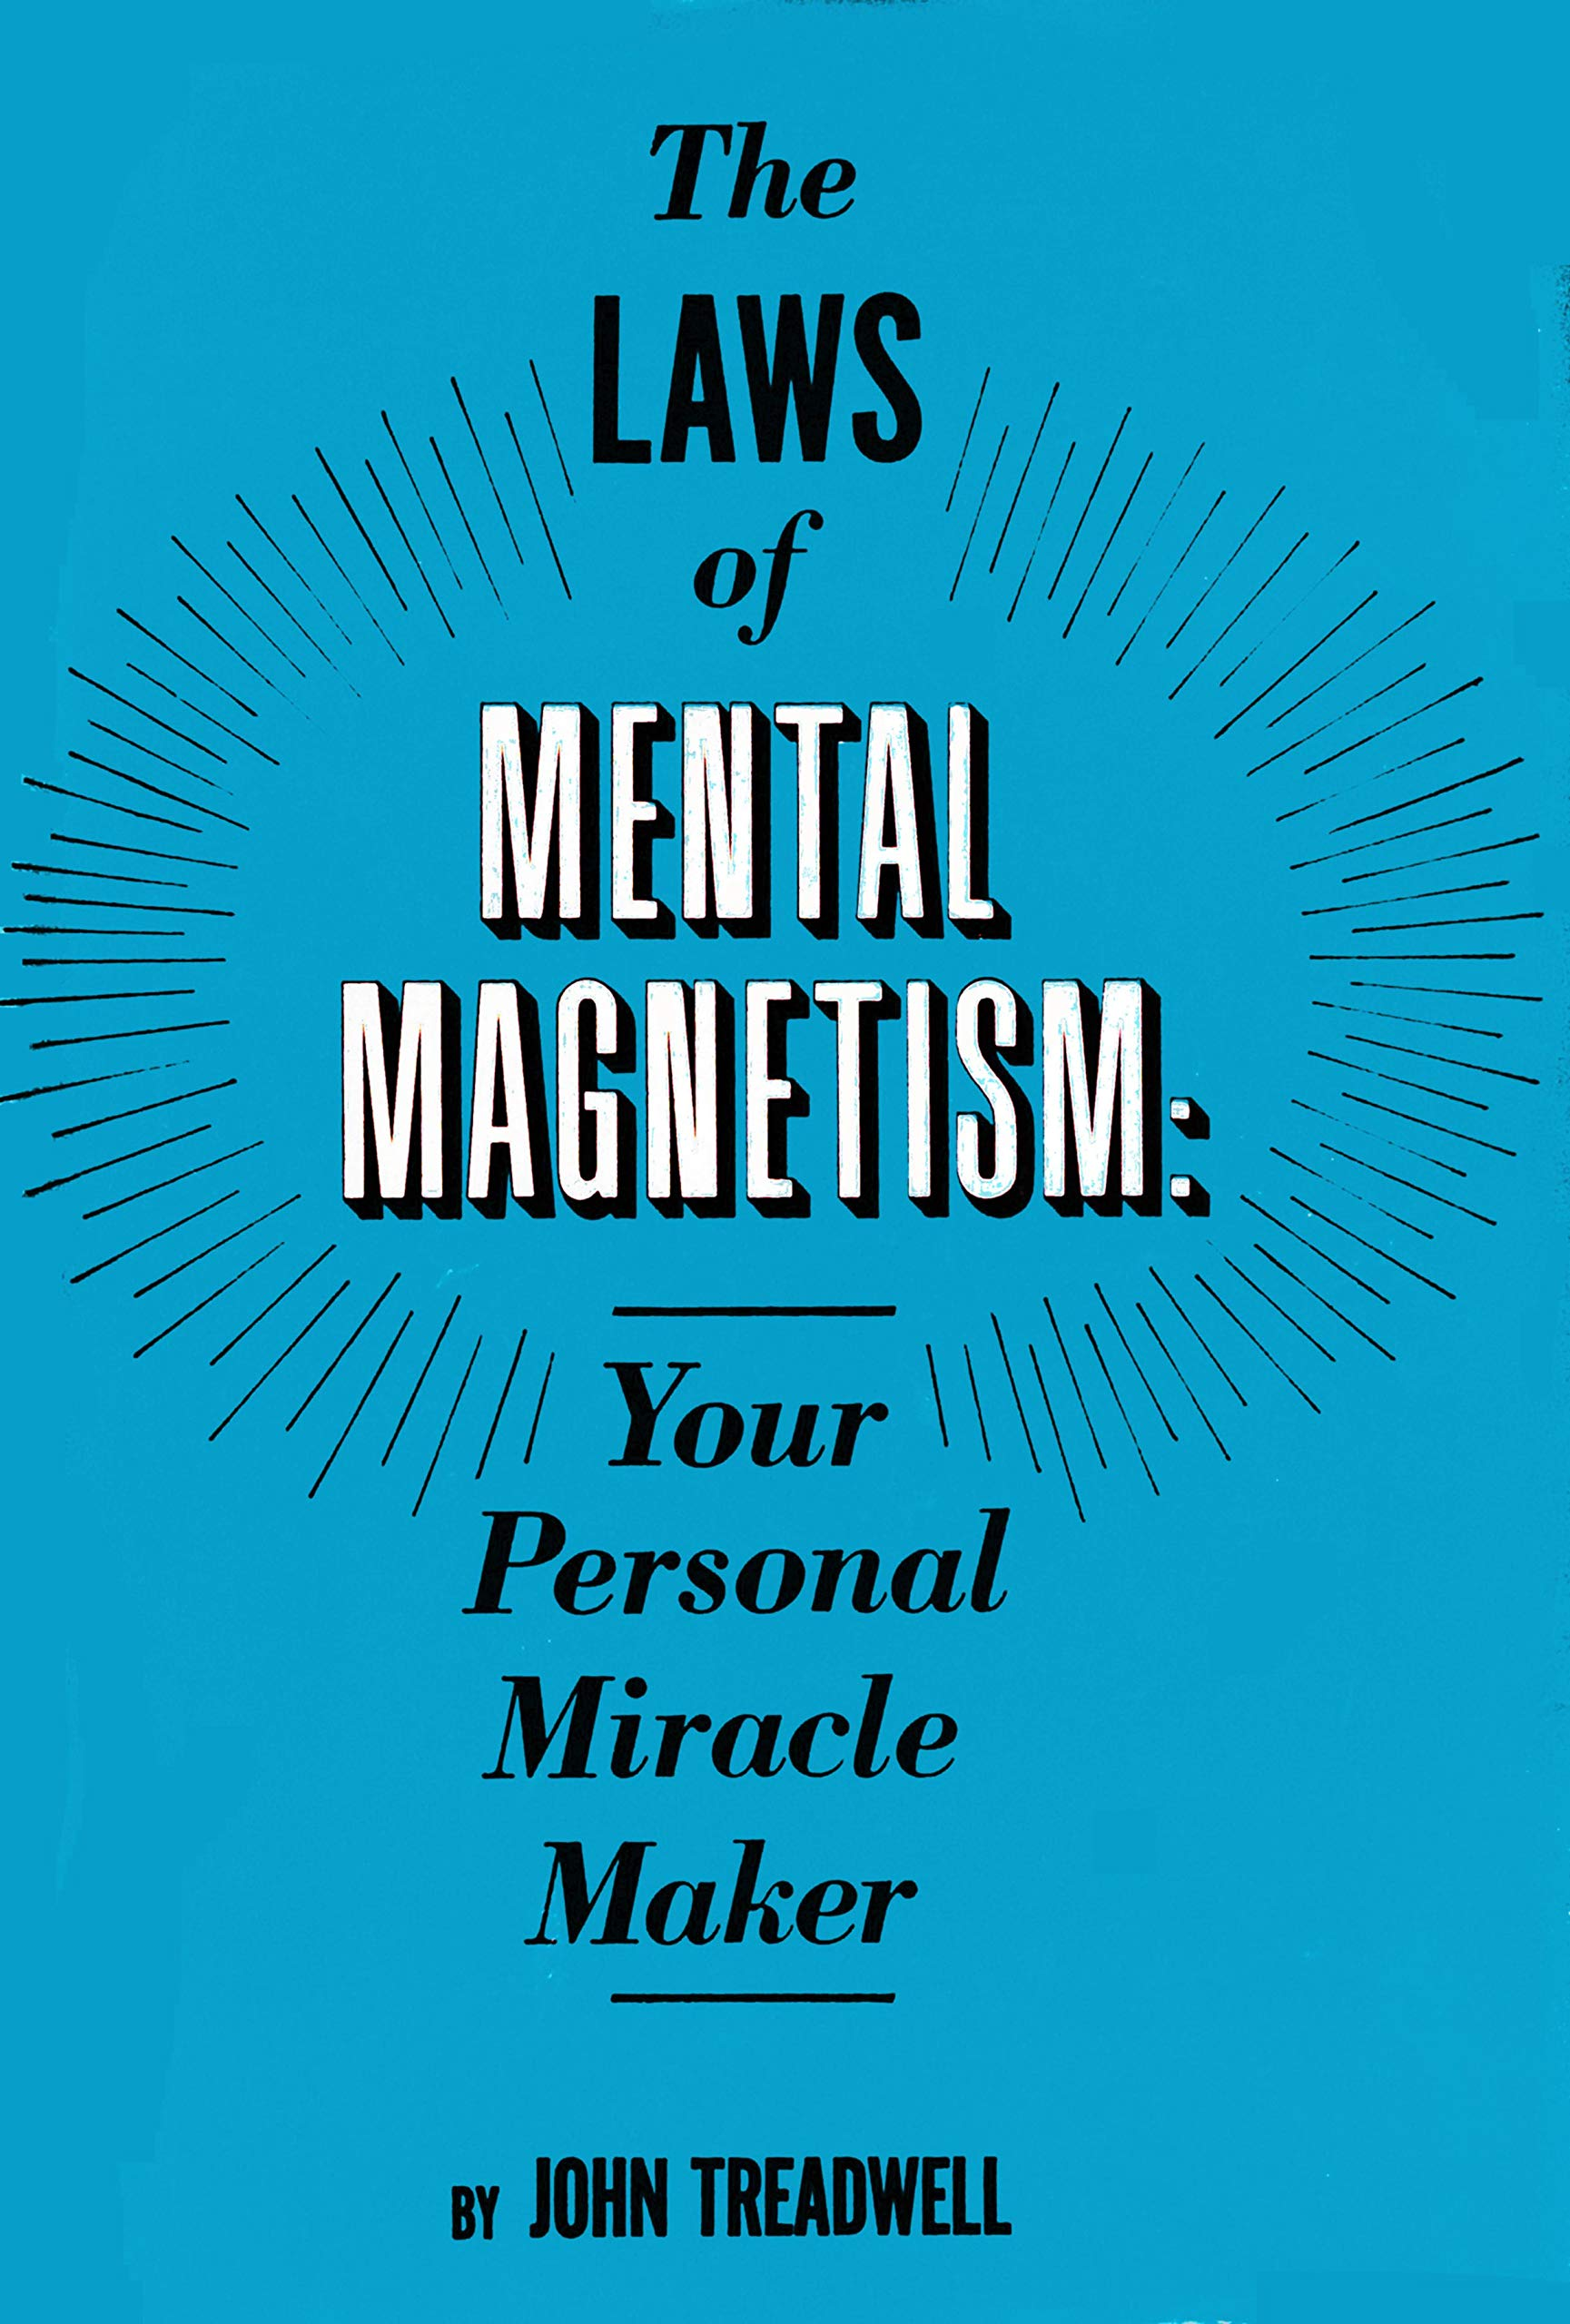 The Laws of Mental Magnetism - Your Personal Miracle Maker